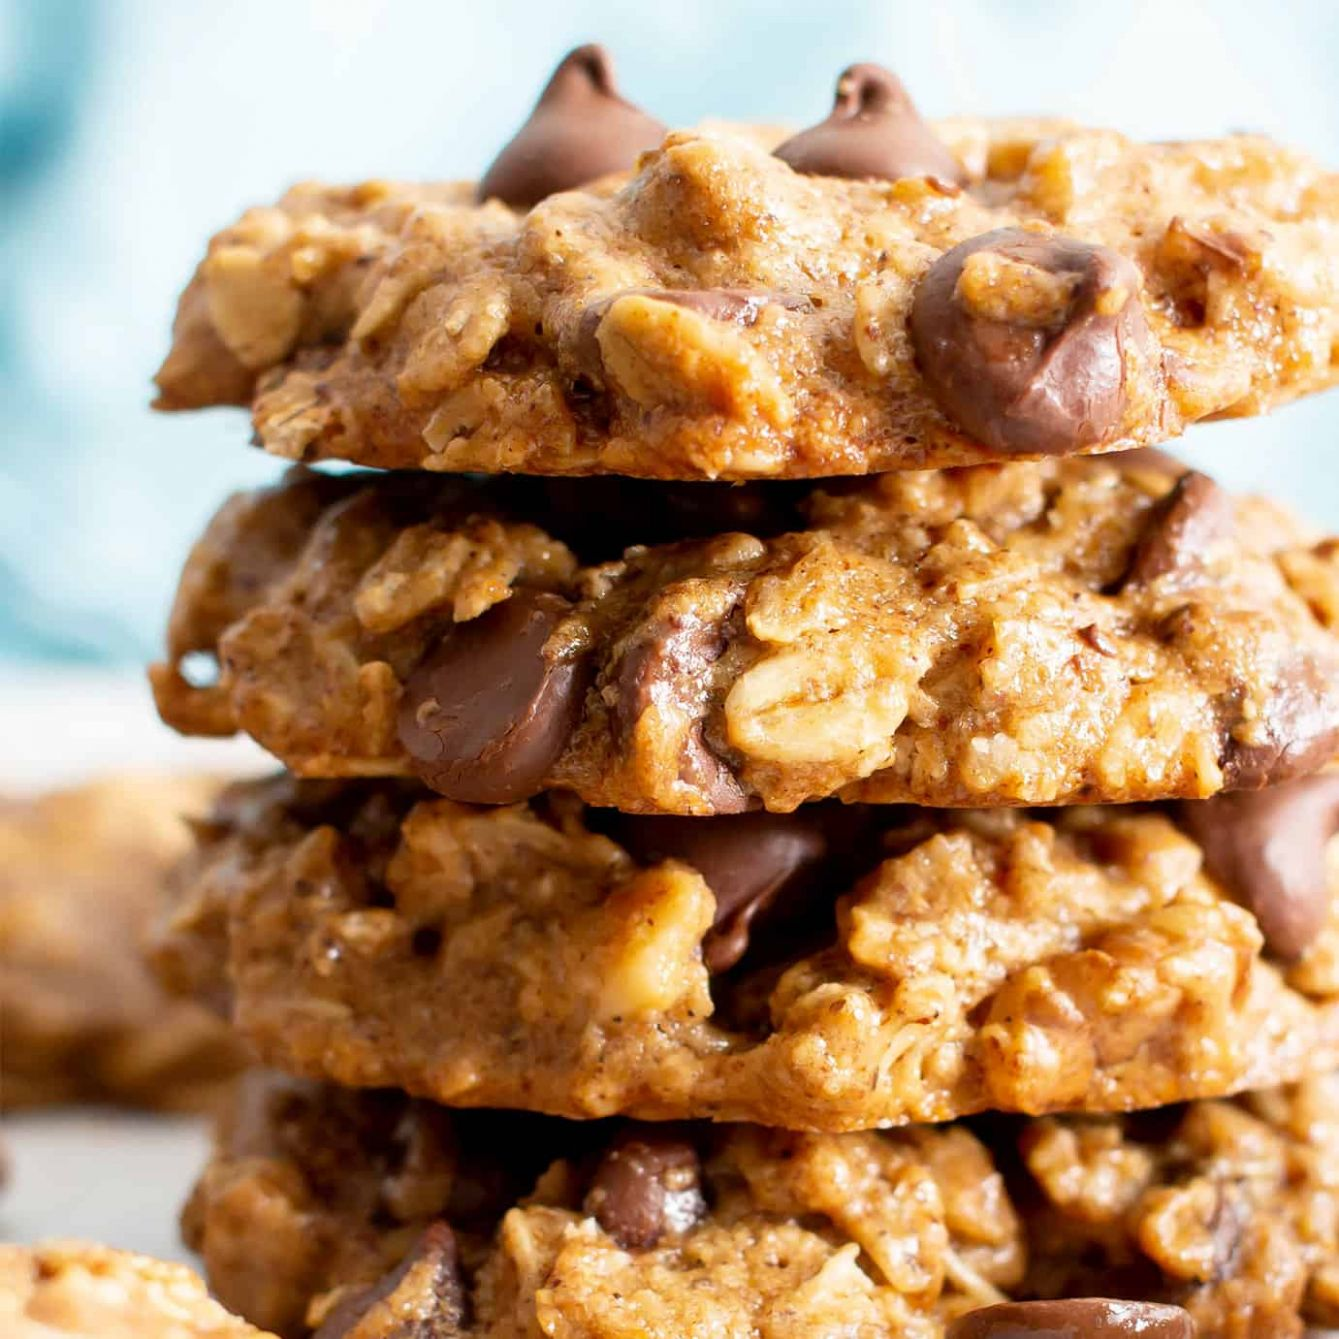 Chewy Healthy Oatmeal Chocolate Chip Cookies (Vegan, Gluten-Free,  Dairy-Free, Refined Sugar-Free) - Healthy Recipes Cookies